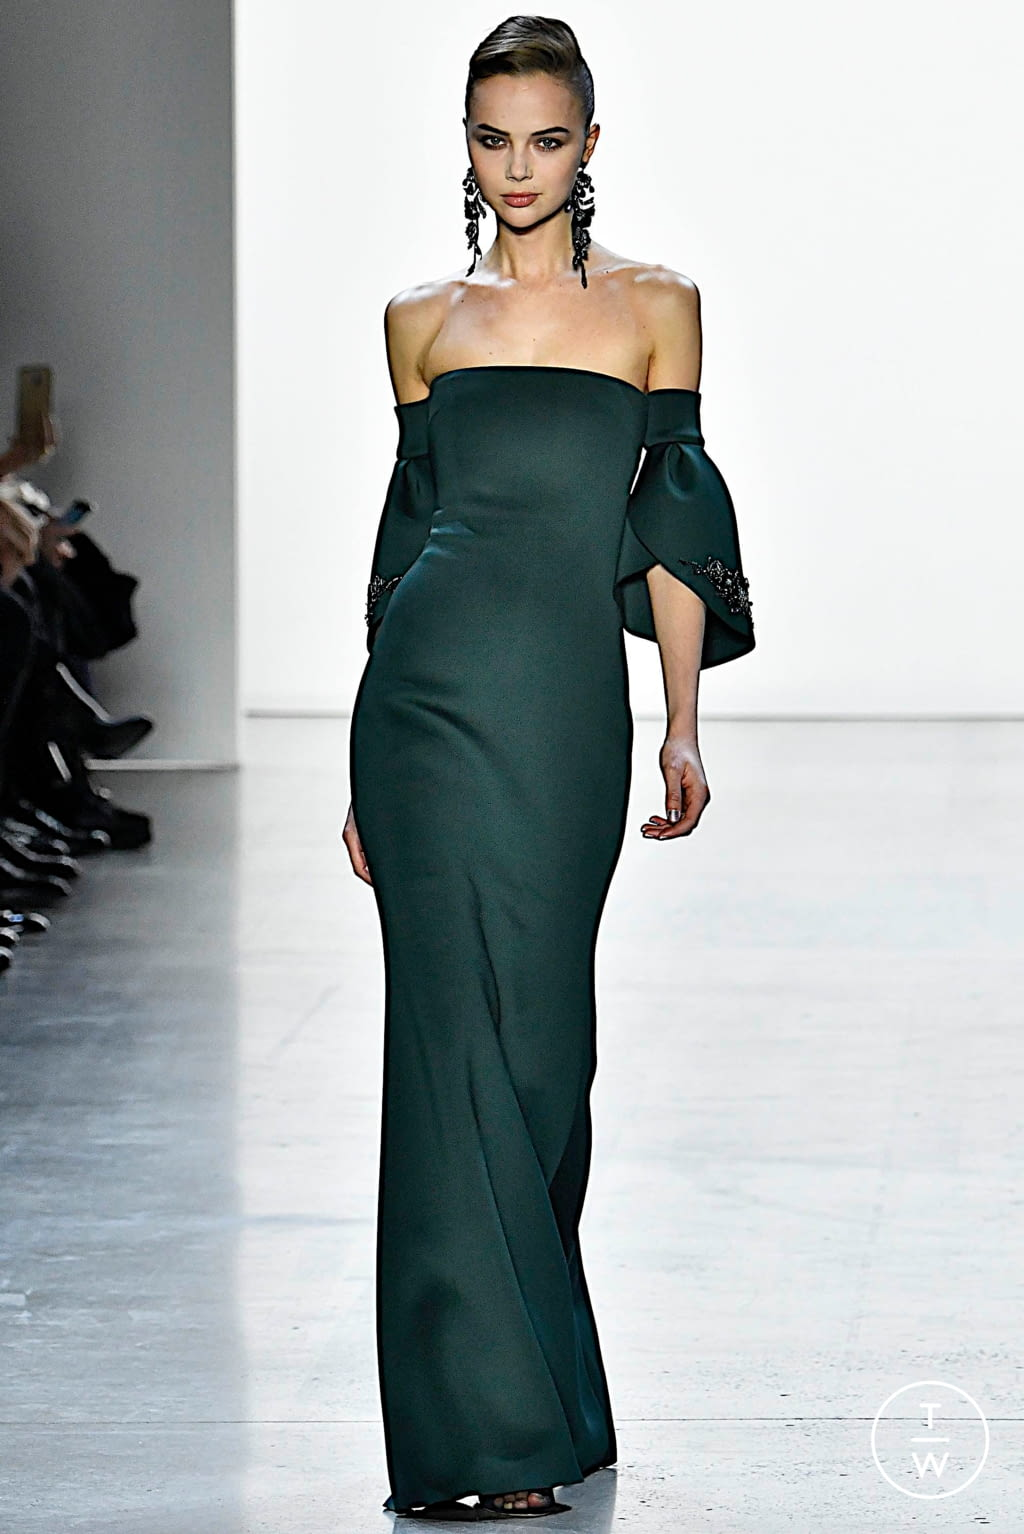 Fashion Week New York Fall/Winter 2019 look 12 de la collection Badgley Mischka womenswear